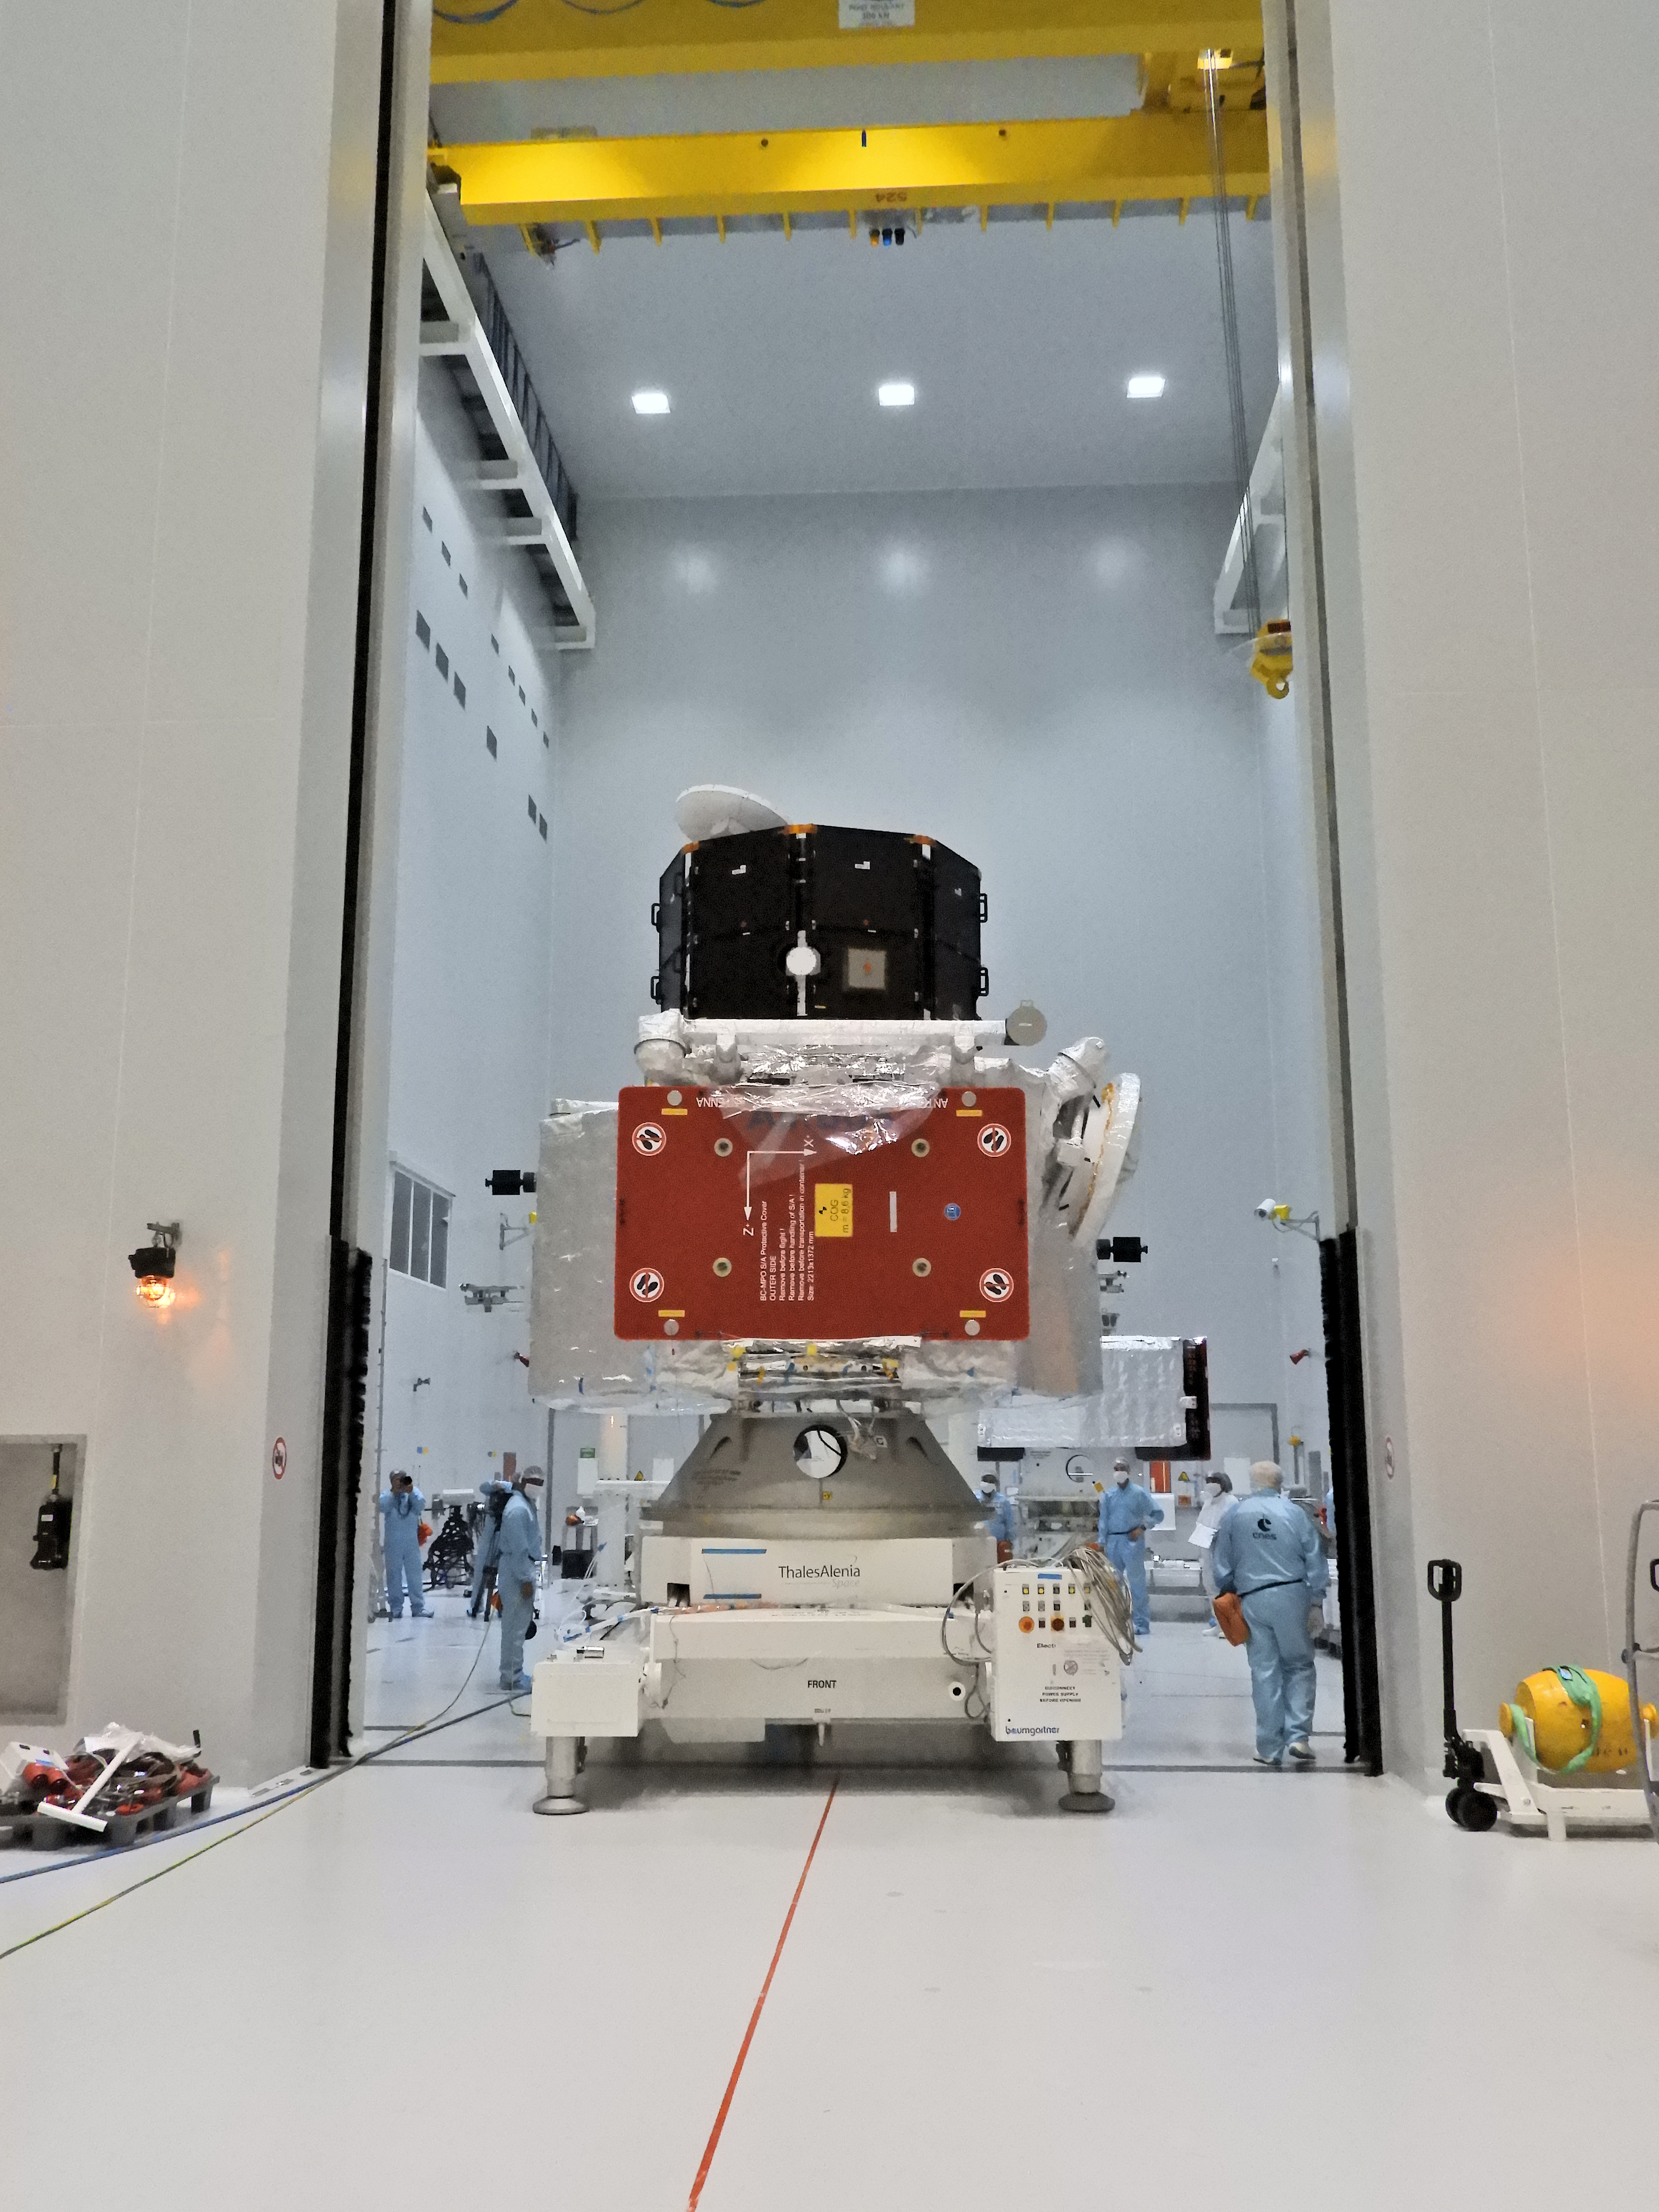 1567214075725-BepiColombo_ministack_on_the_move_4.jpg